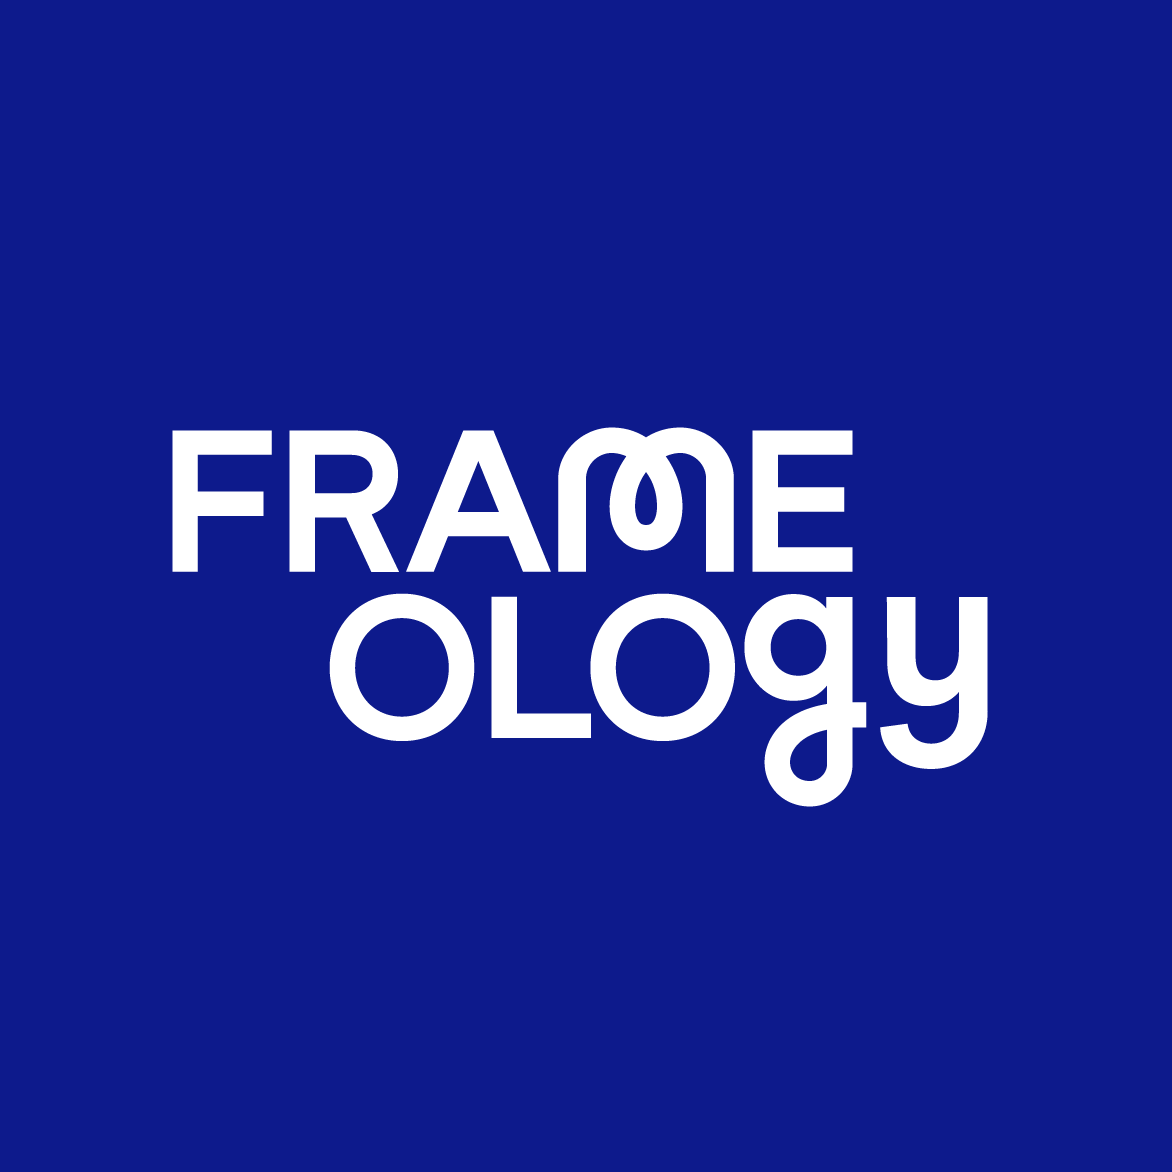 Wall Picture Frames | Gallery Frames | Wall Art | Frameology